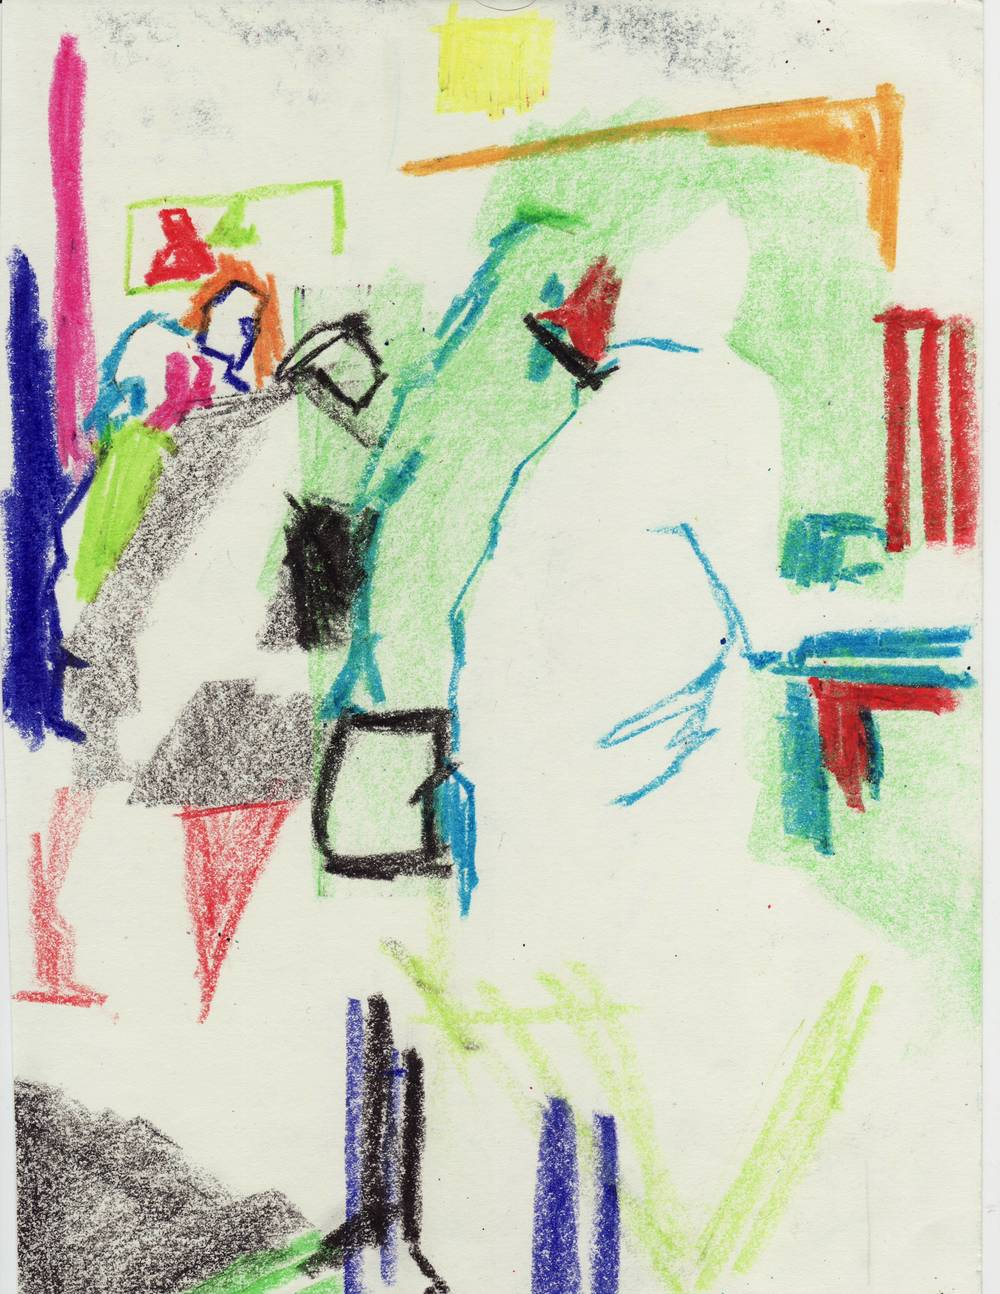 bar 10 by12 inc crayon 2007.JPG